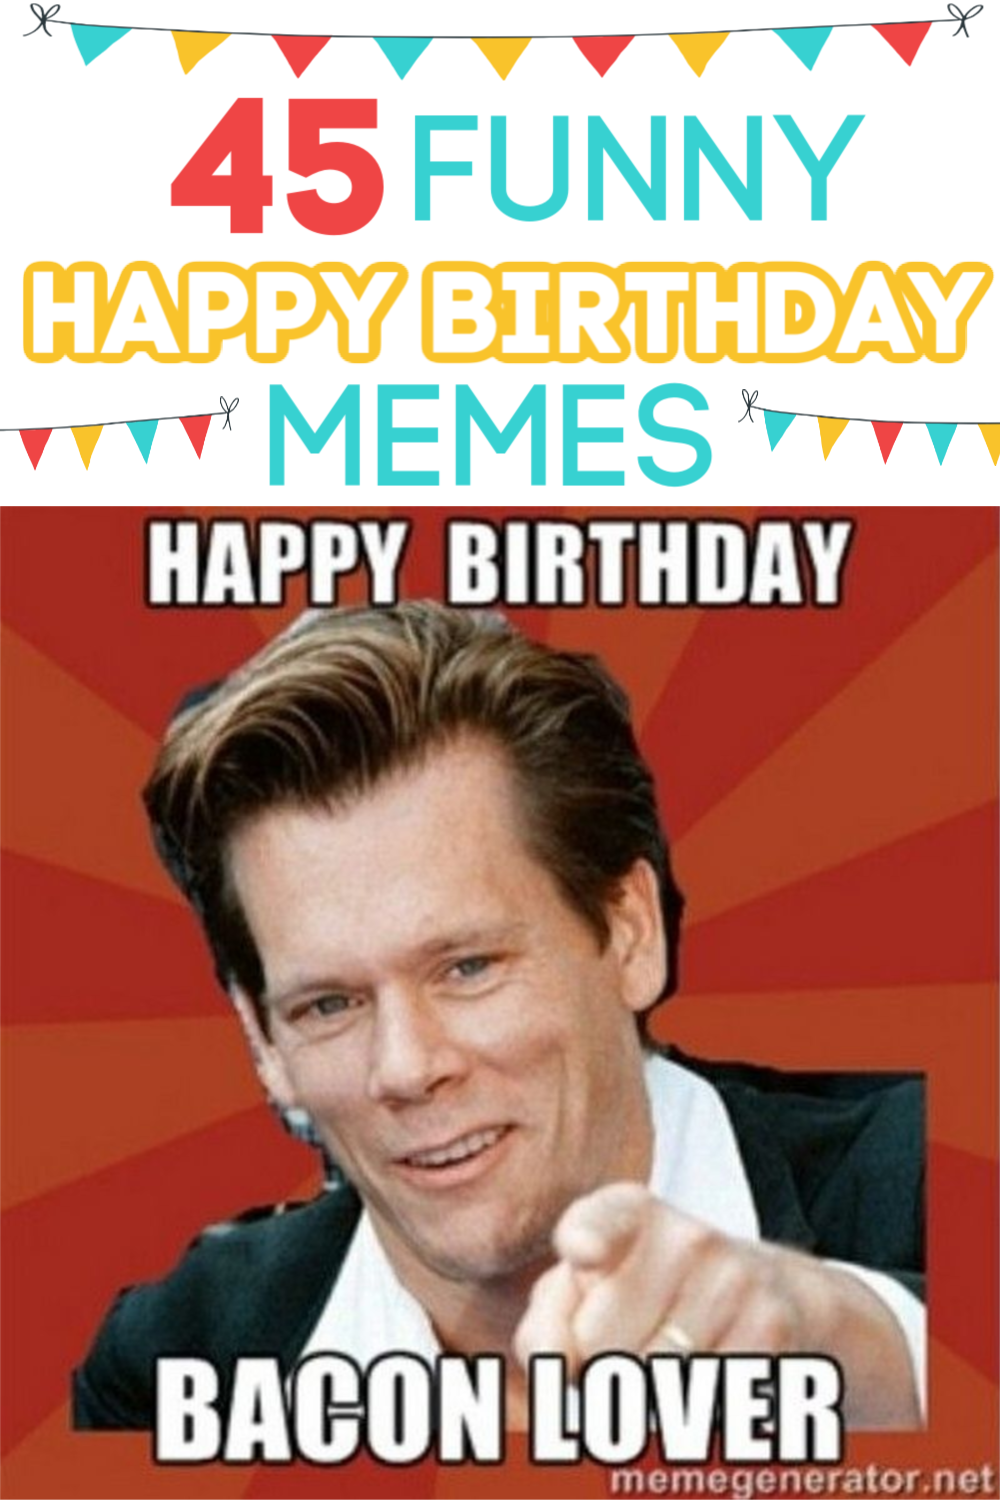 I love to send funny happy birthday memes to my friends